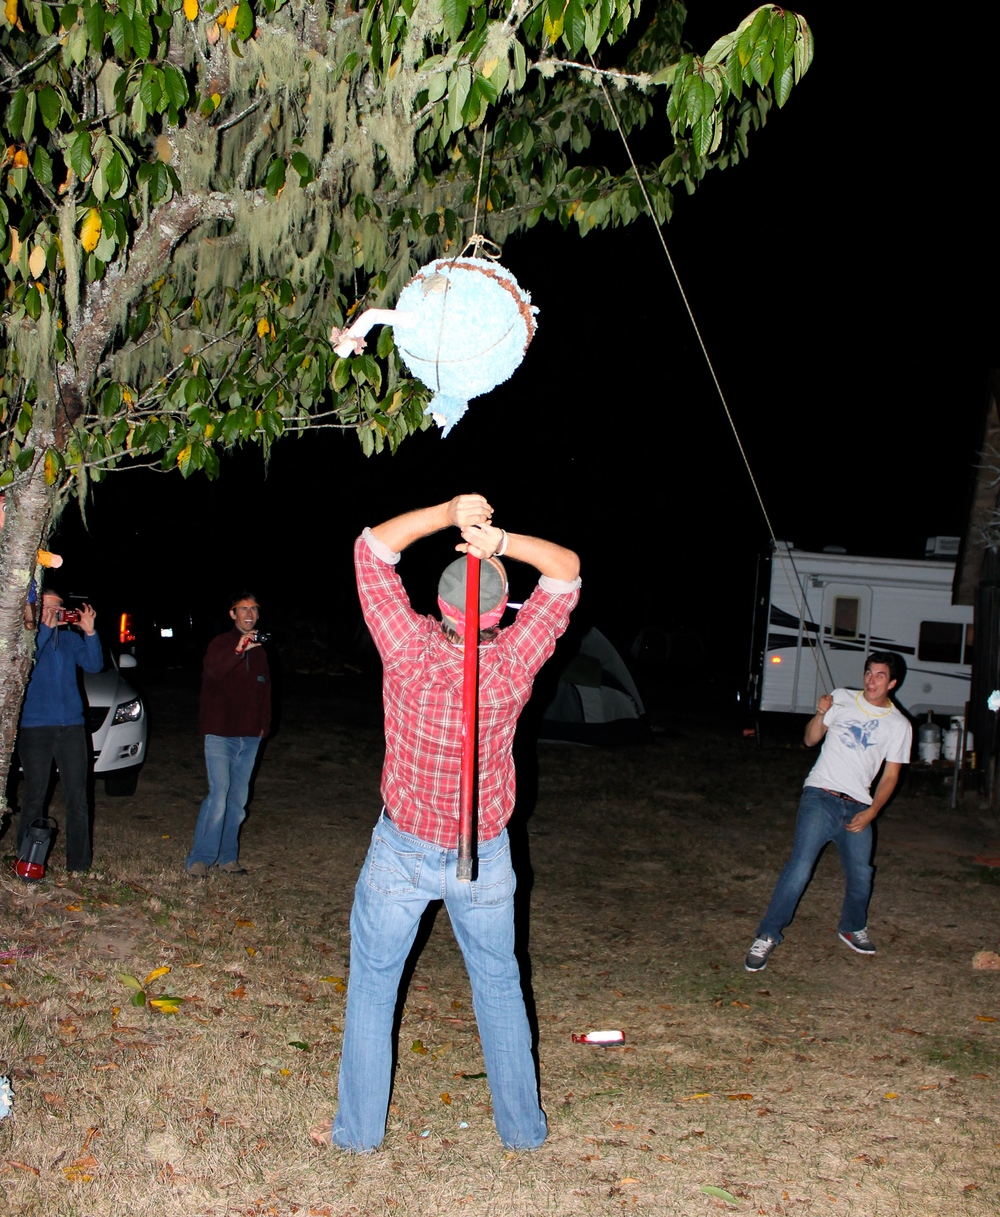 Piñatas=Camp fun!